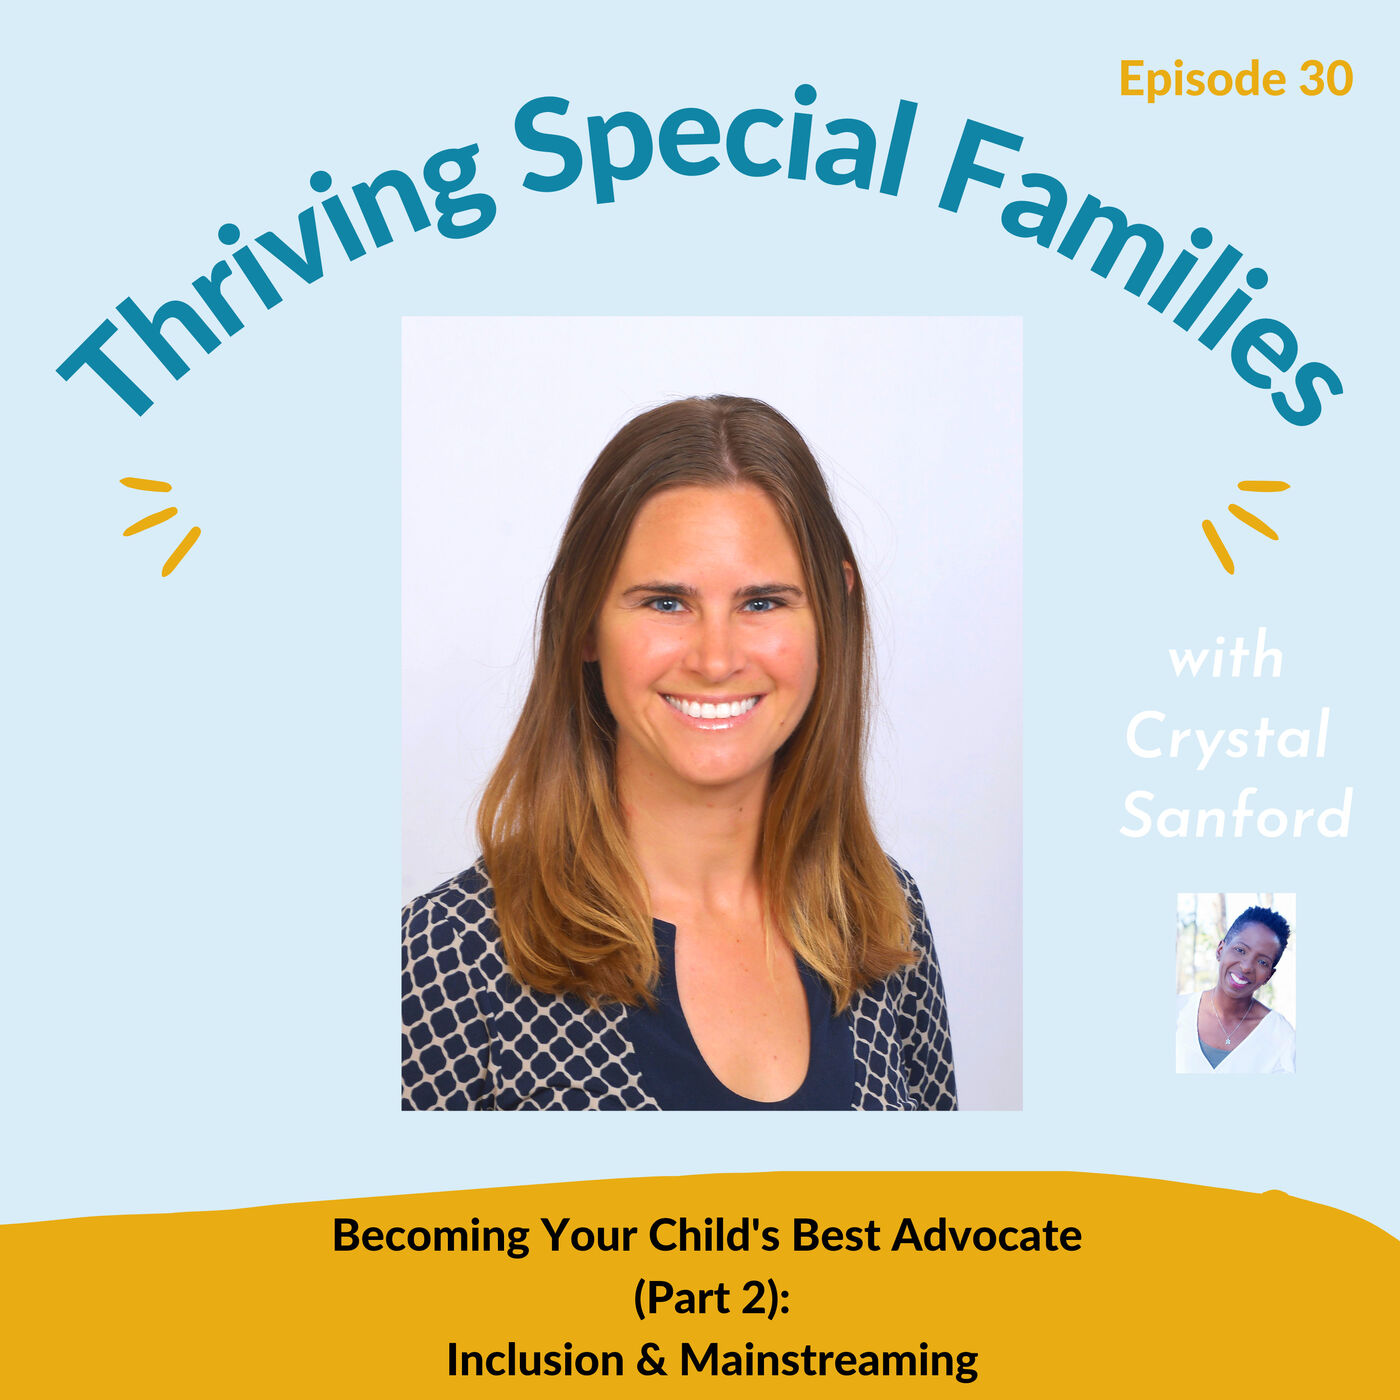 Becoming Your Child's Best Advocate (Part 2): Inclusion & Mainstreaming